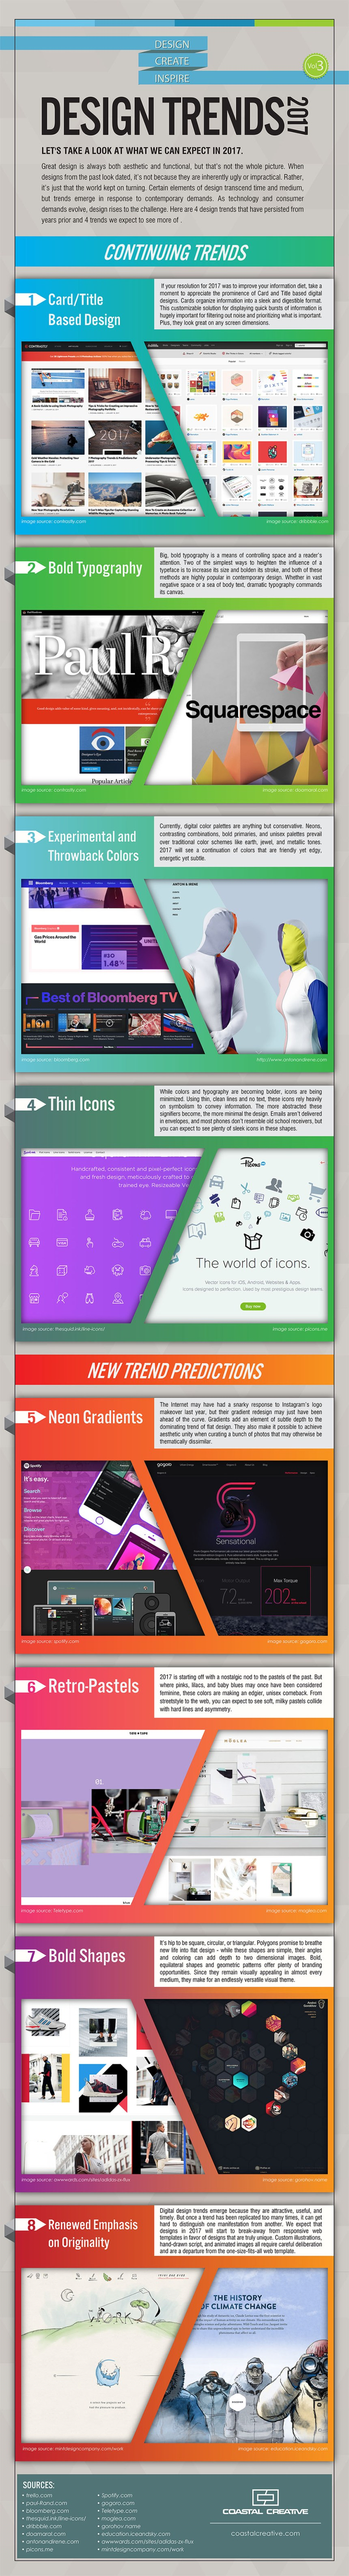 Design Trends 2017 Infographic